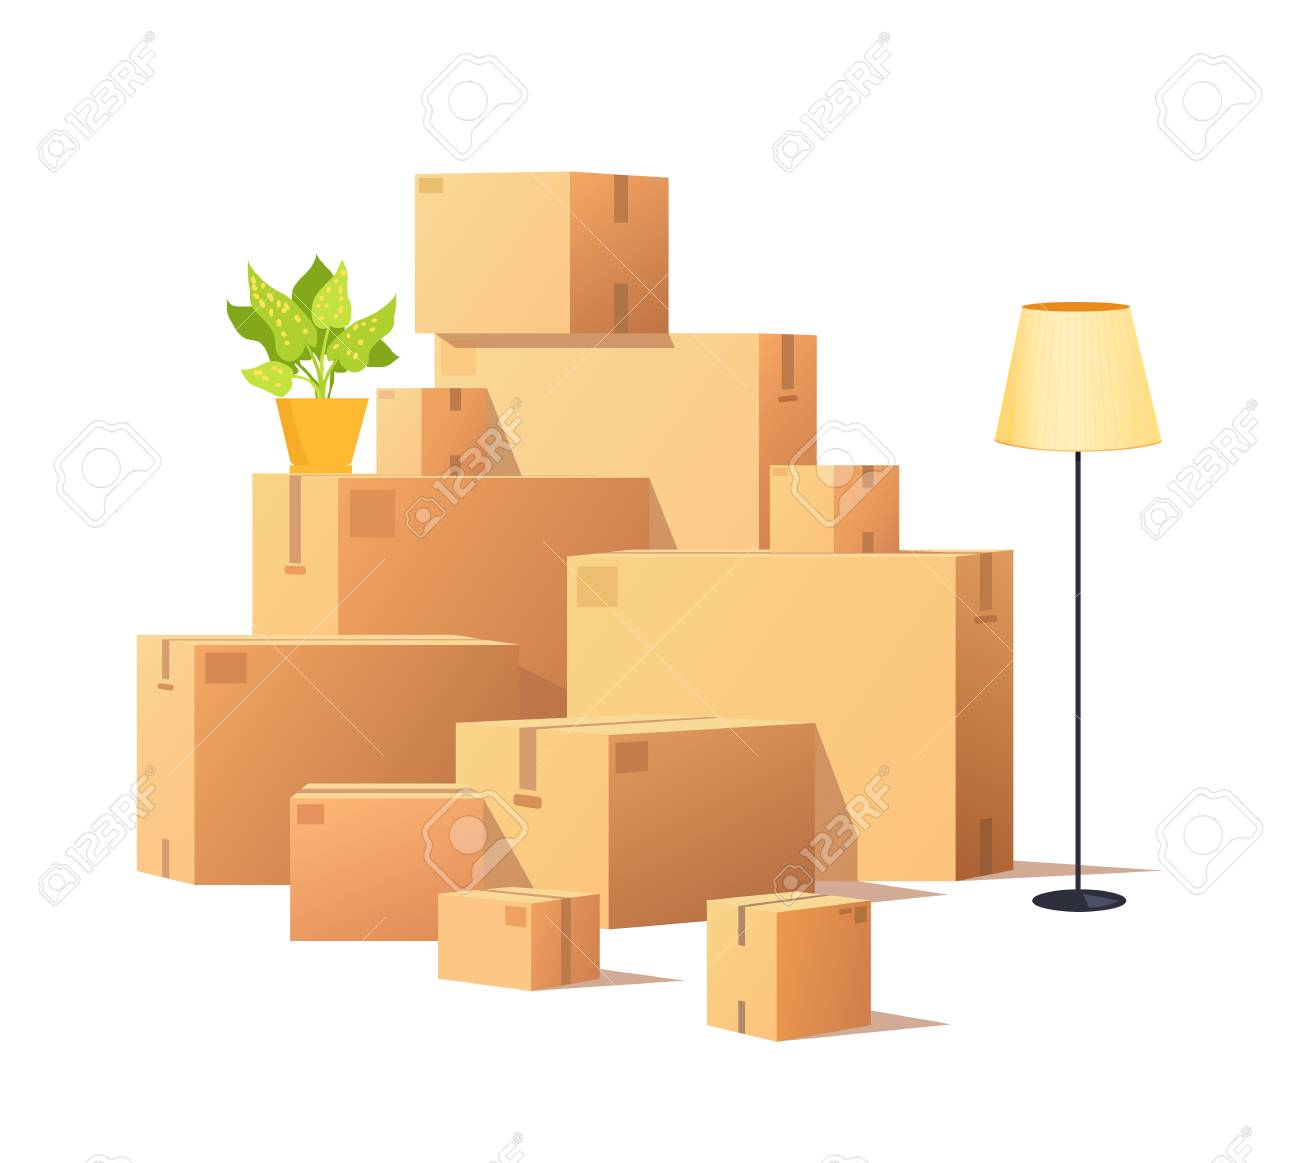 Box carton, closed cardboard packages cargo vector. Torchiere standing lamp and houseplant in pot, potted flower with leaves. Delivery and containers - 127157963